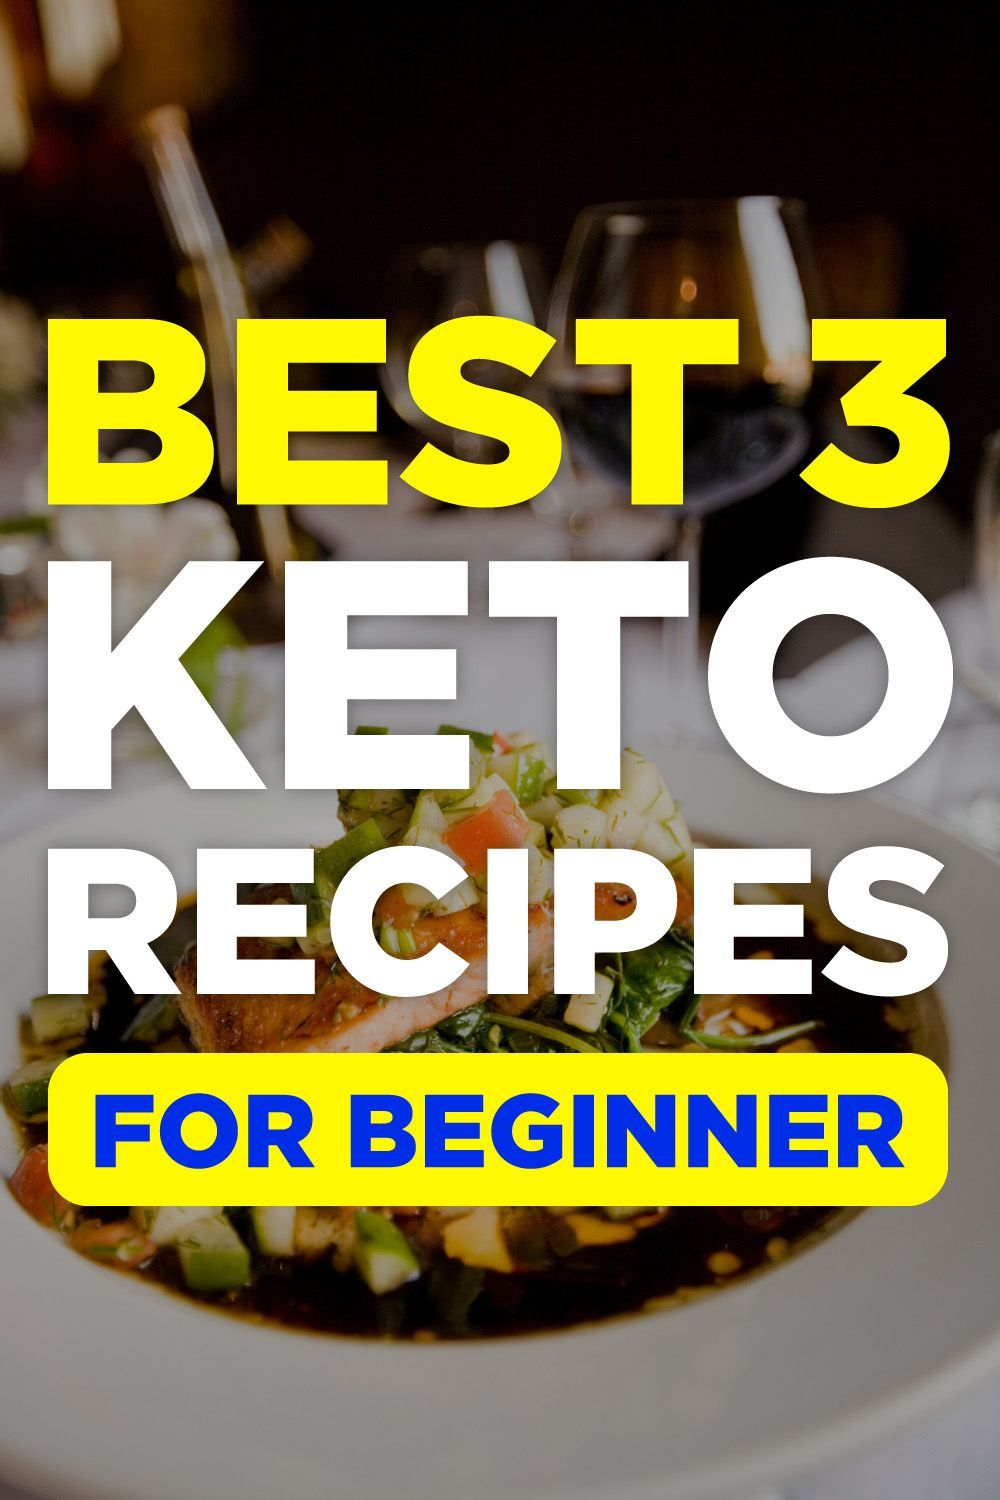 Best 3 Keto Diet, modified paleo diet, 	myfitnesspal recipes, 	recipes foods,  #myfitnesspalrecipes modified paleo diet, 	myfitnesspal recipes, 	recipes foods,  workouts plans for weight loss, 	how to lose 20lbs, 	keto diet recipes,  diet plans for weight loss, 	healthy snacks for weight loss, 	keto diet and kidney stones,  keto diet safe, 	keto diet meal prep, 	lose diet,  clean keto recipes, 	low carb diet list, 	tummy workout,  ketogenic diet recipes, 	lose weight for good, 	healthy diets to #myfitnesspalrecipes